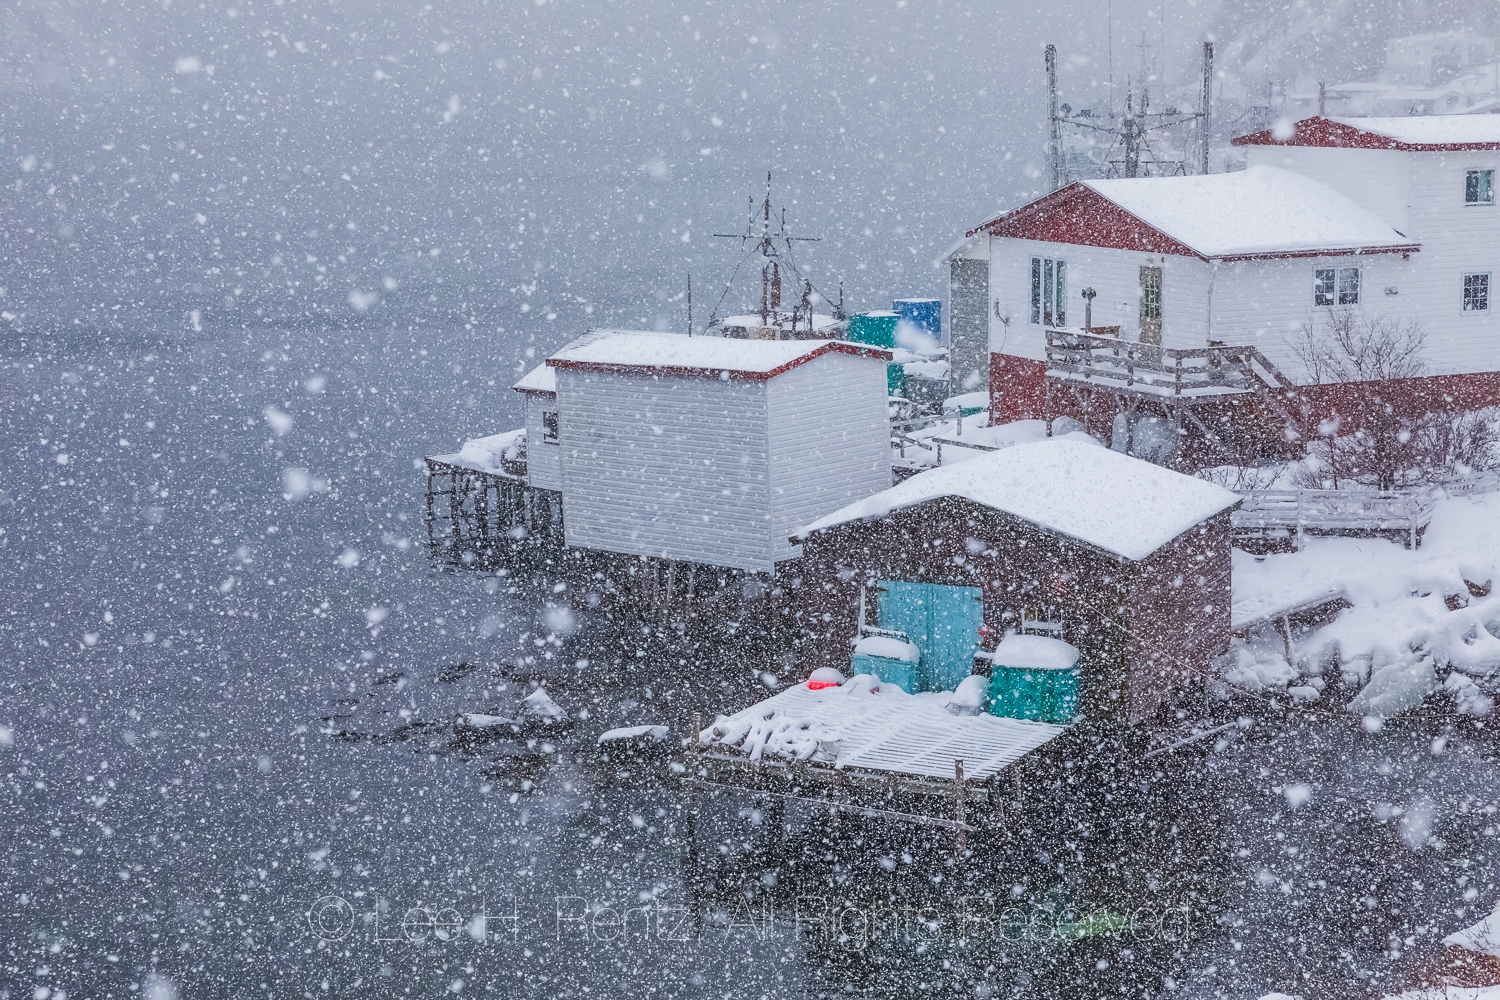 Fishing Stages in Francois Outport during a Snowstorm in Newfoun